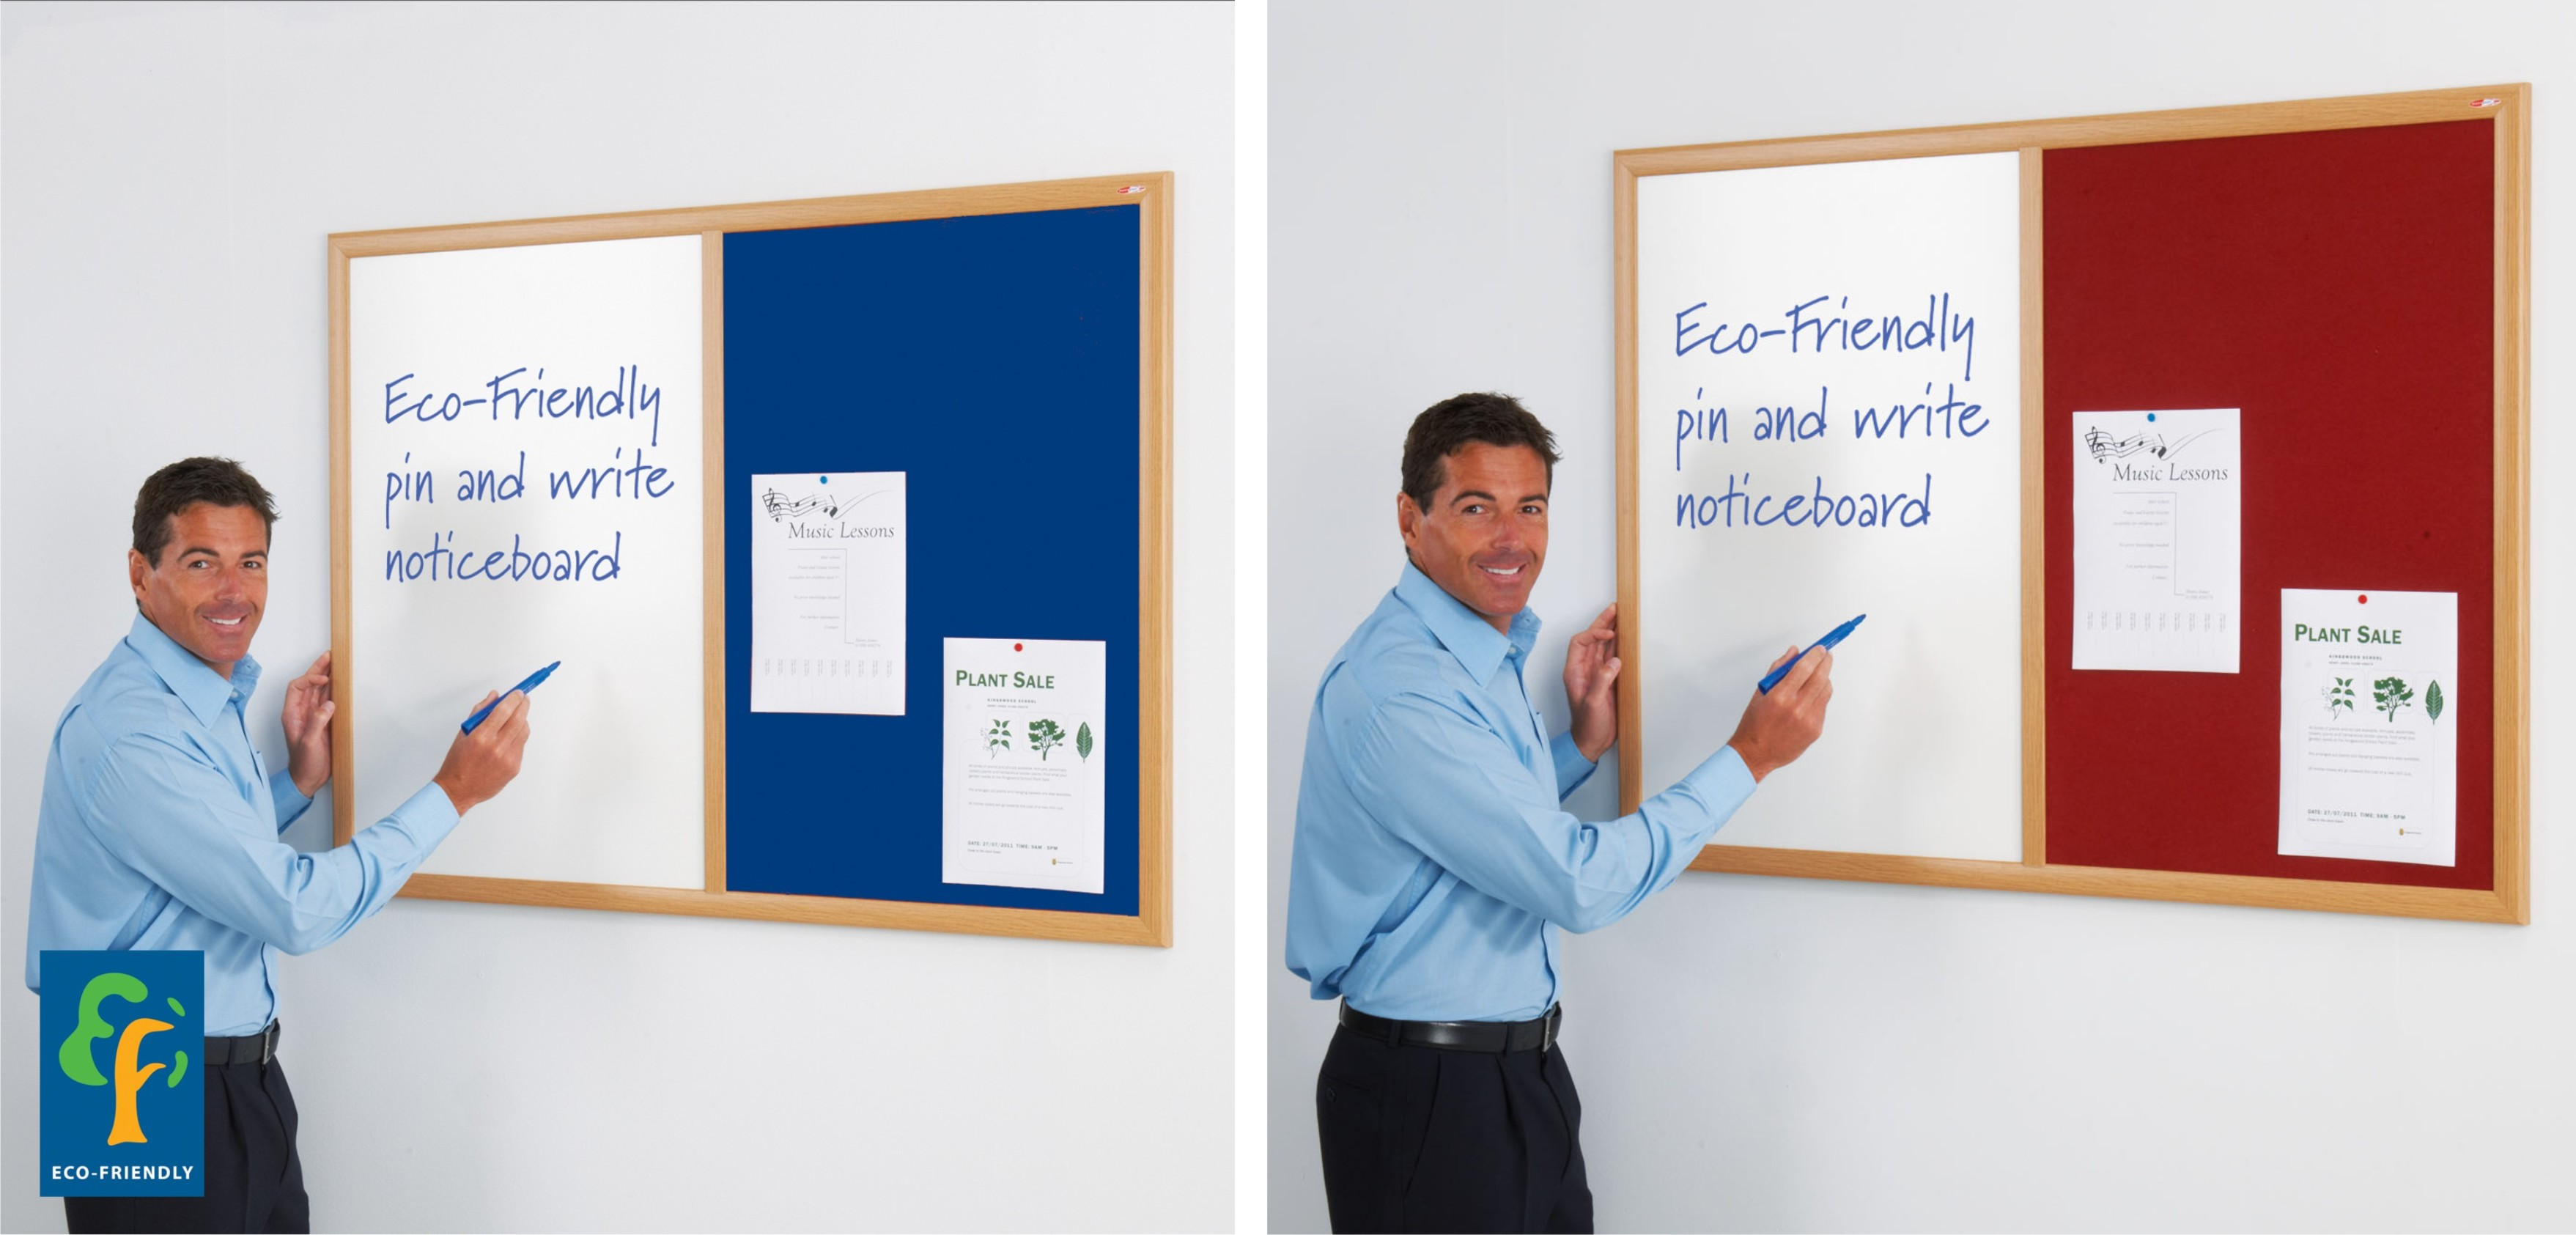 Eco Friendly Dual Noticeboards